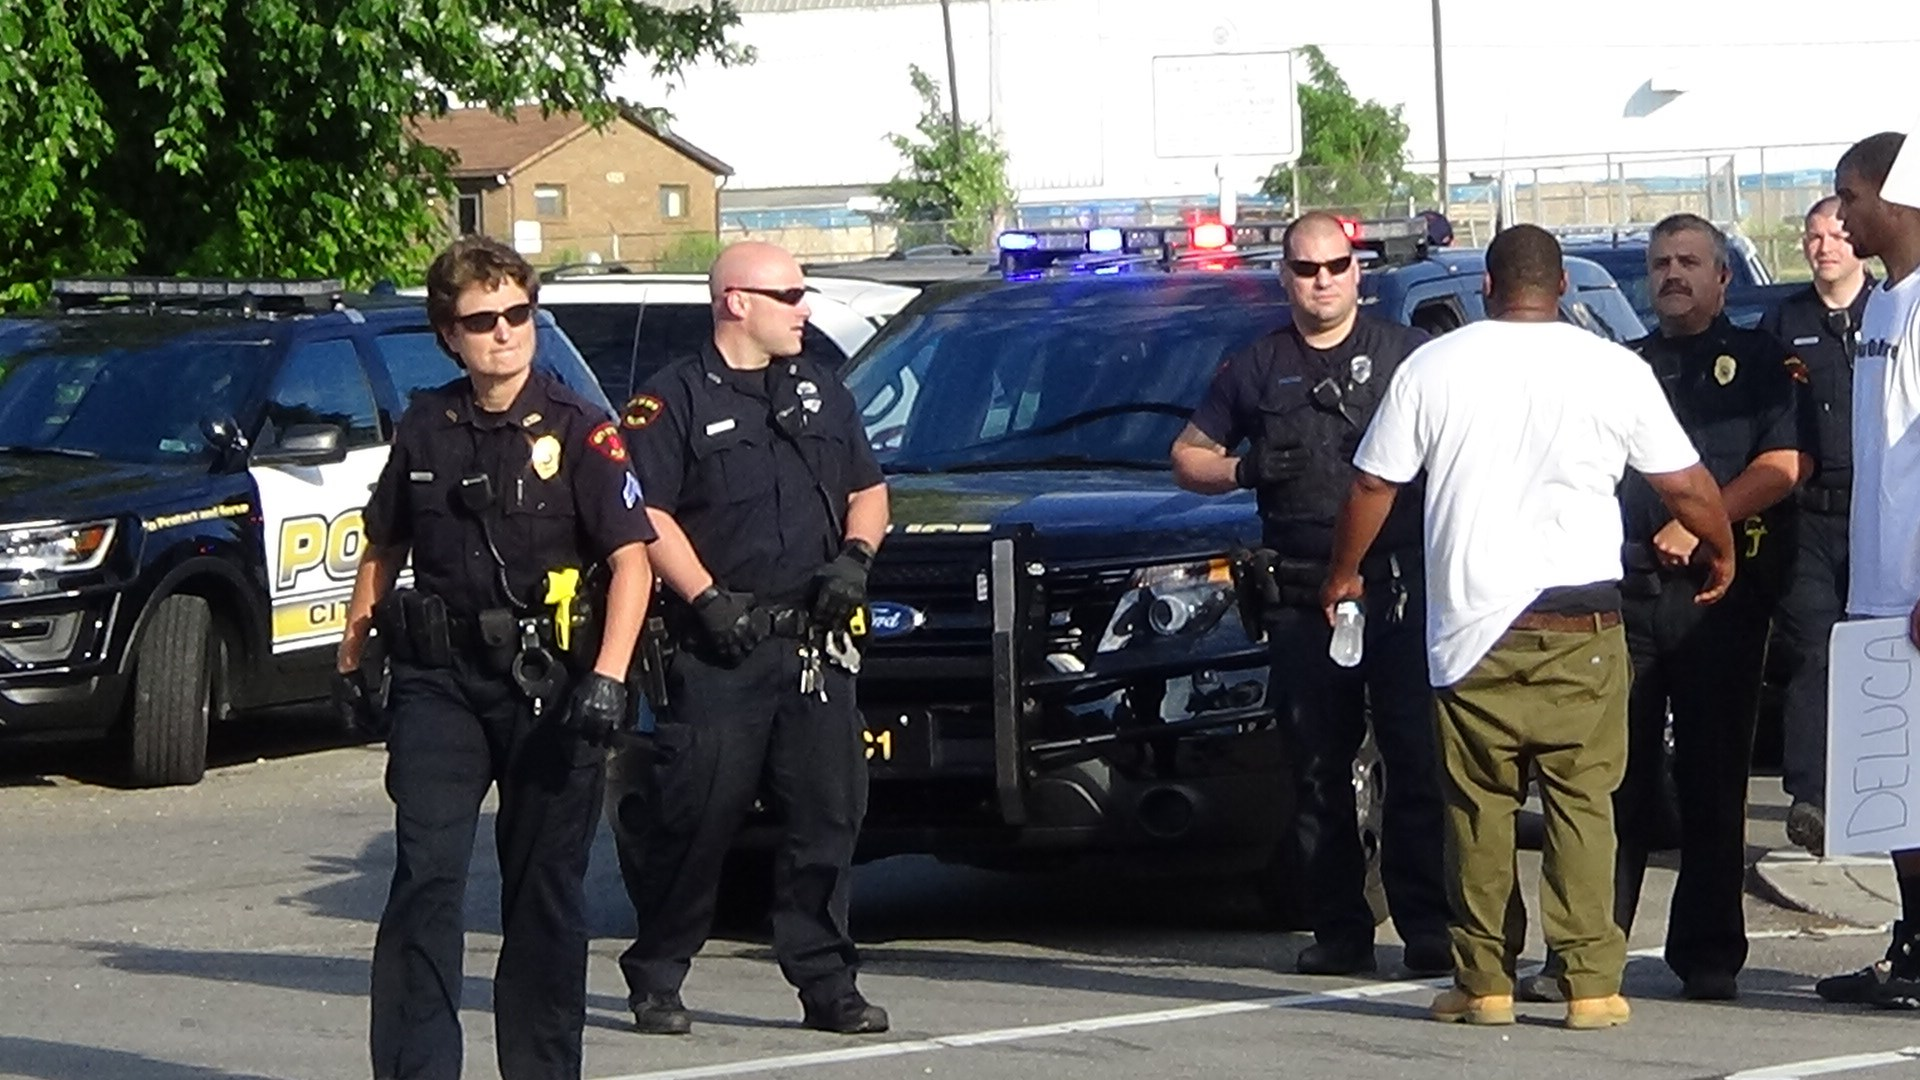 Erie, PA (July 22, 2016) Take Back Out Street Movement-Erie, PA members speaking to Erie Police Officers during a peace rally on the corner of East 12th and Wayne Street in Erie, PA. (Photo Credit: Lauren Benzo )